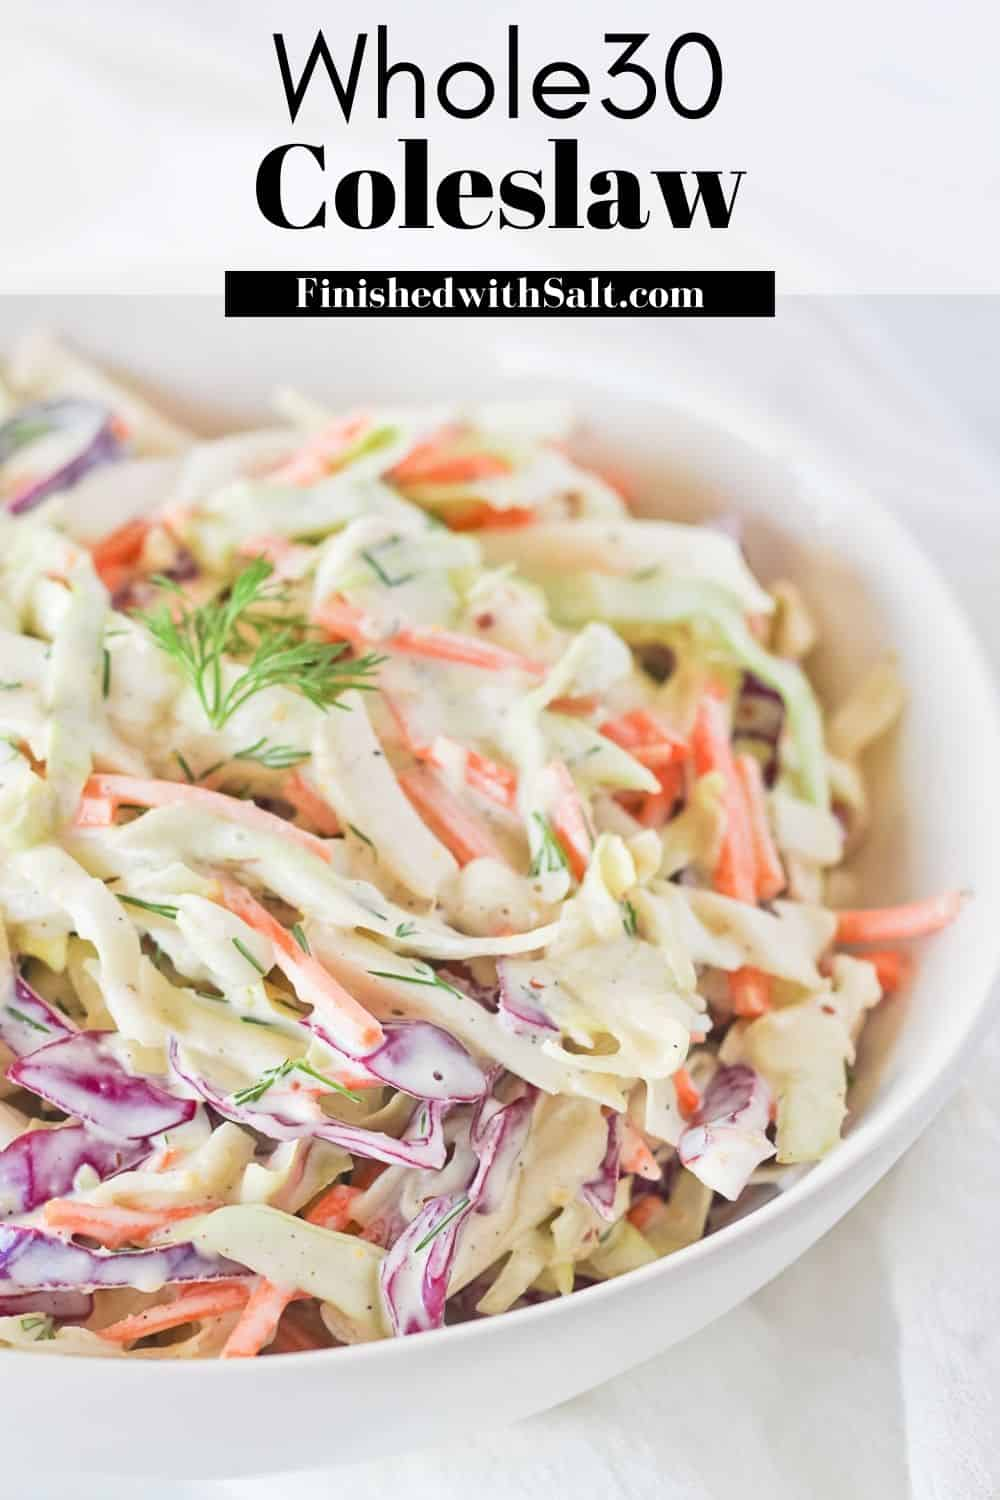 Whole30 Coleslaw with homemade dressing in a white bowl with recipe title.